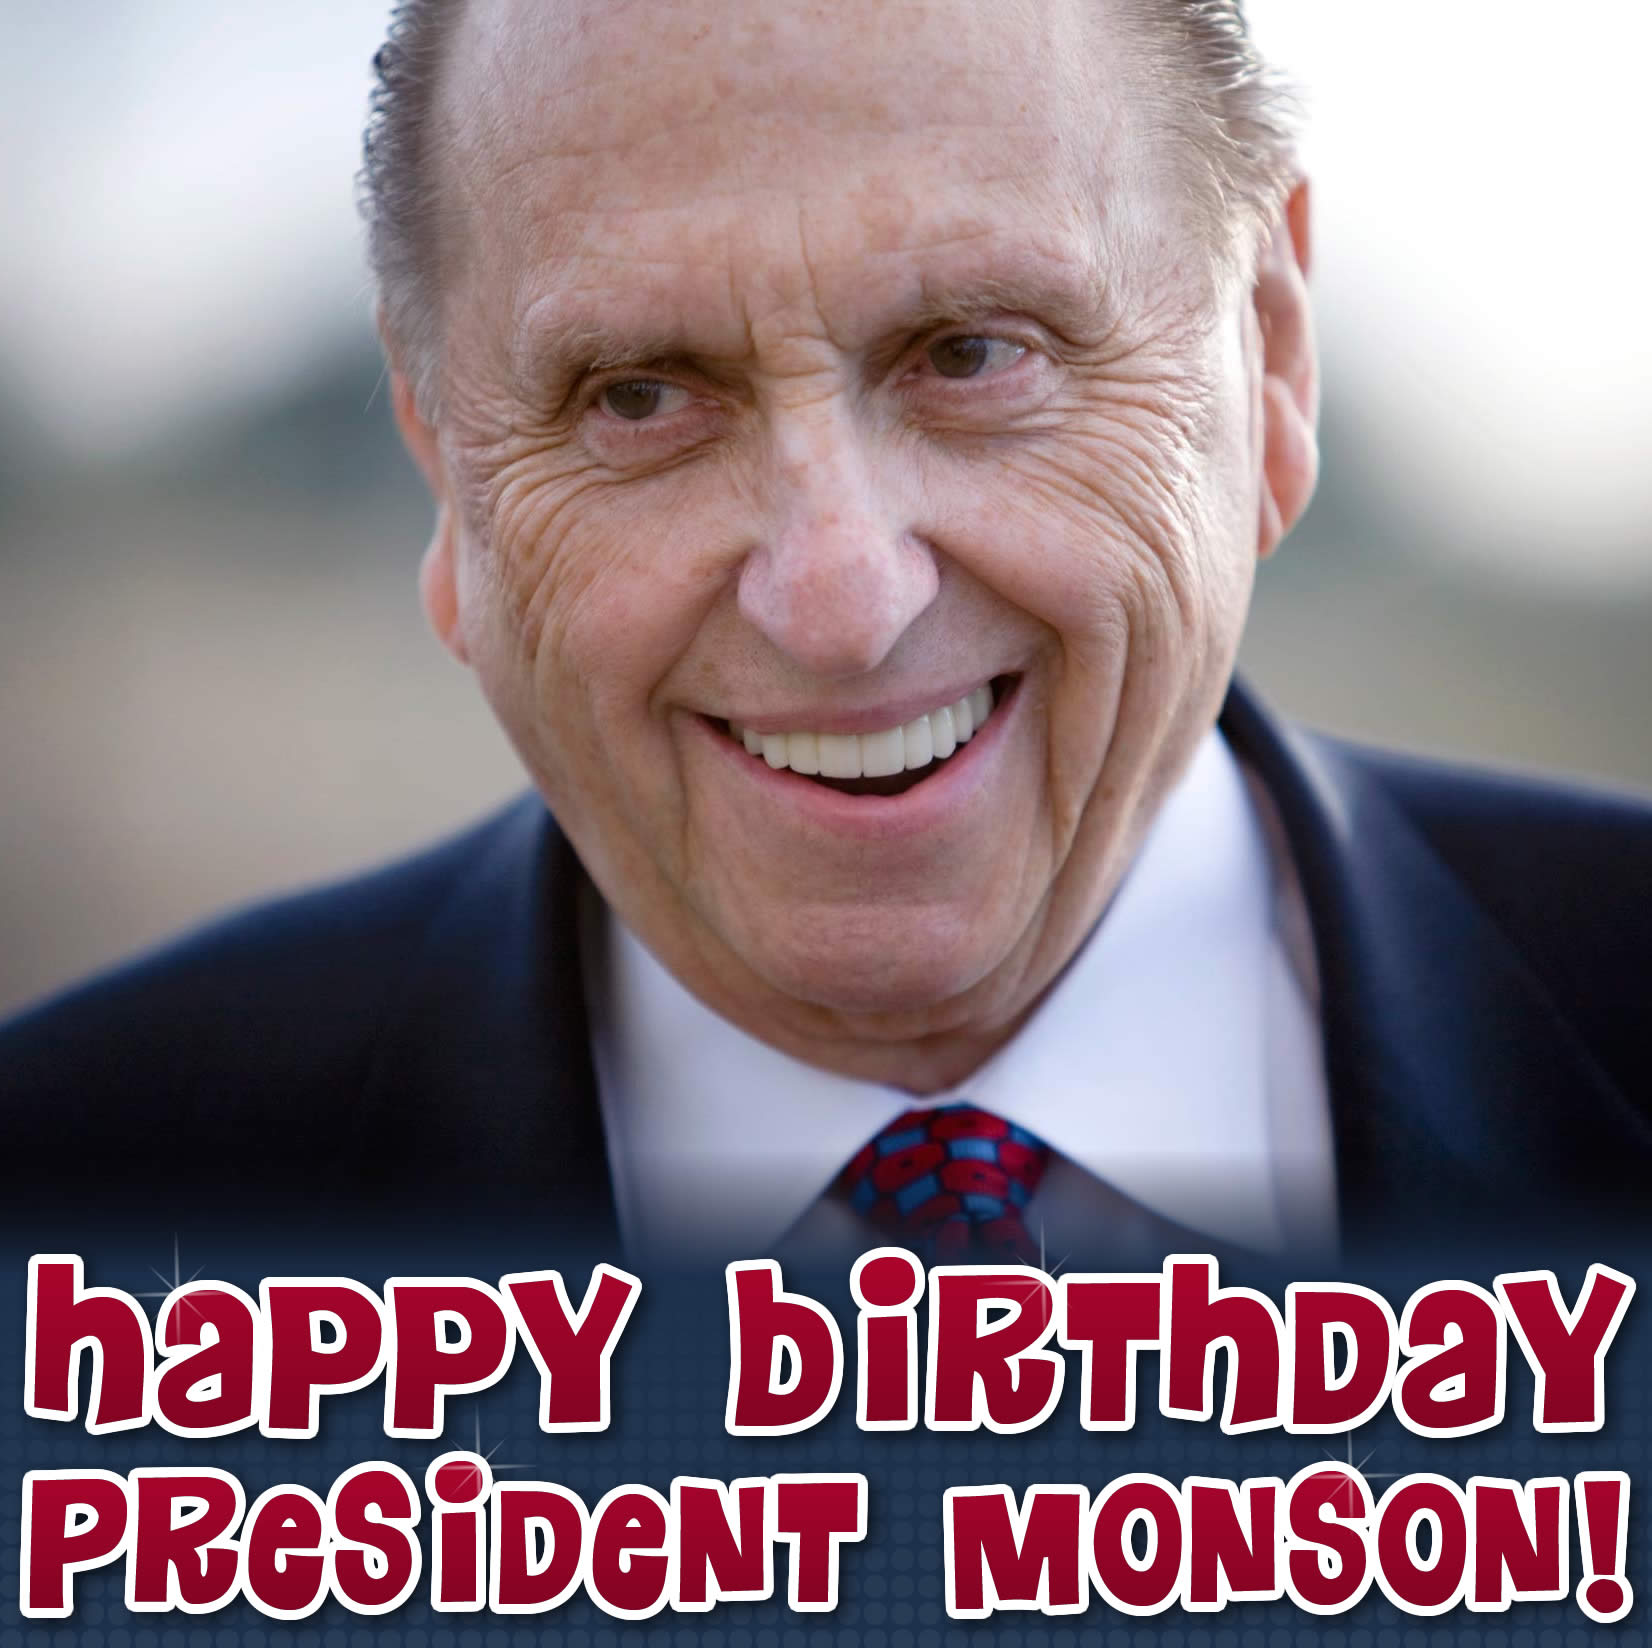 President Monson's Birthday